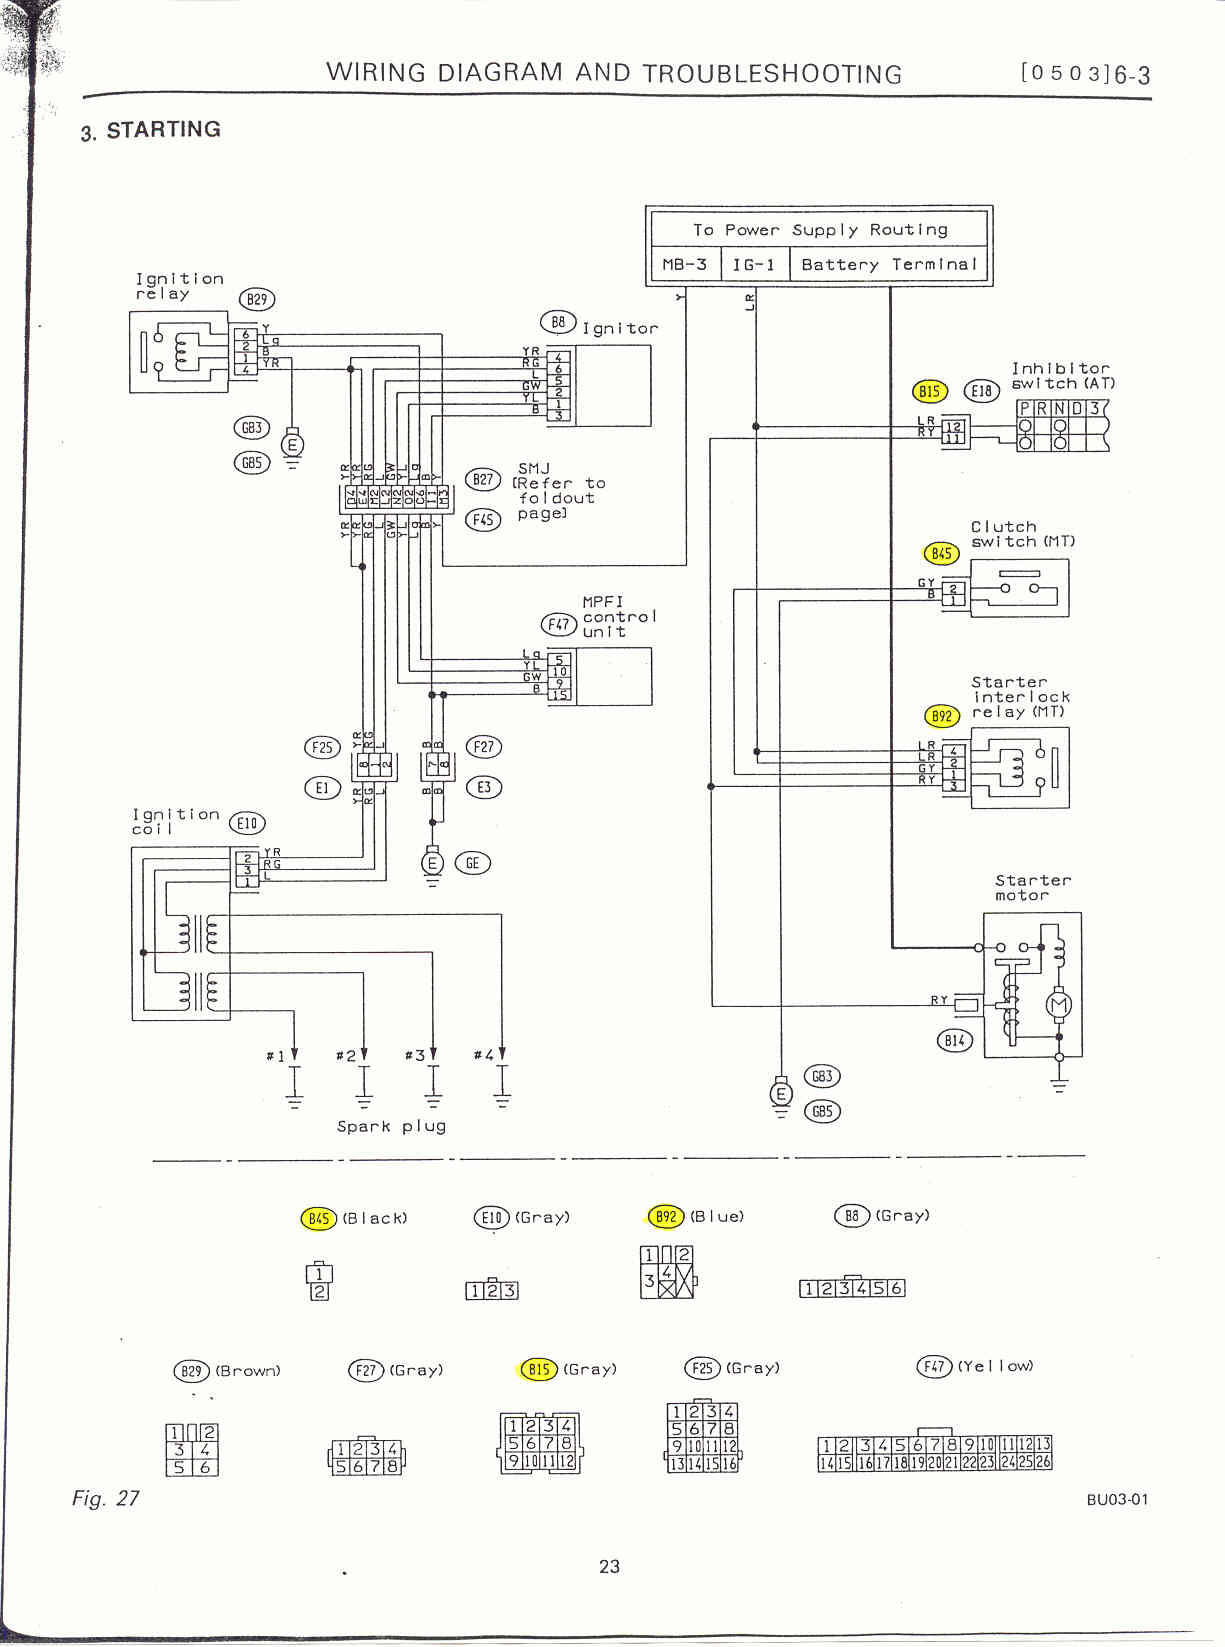 fender deluxe nashville telecaster wiring diagram free picture 24d09 87 dodge w150 wiring diagram wiring resources  24d09 87 dodge w150 wiring diagram